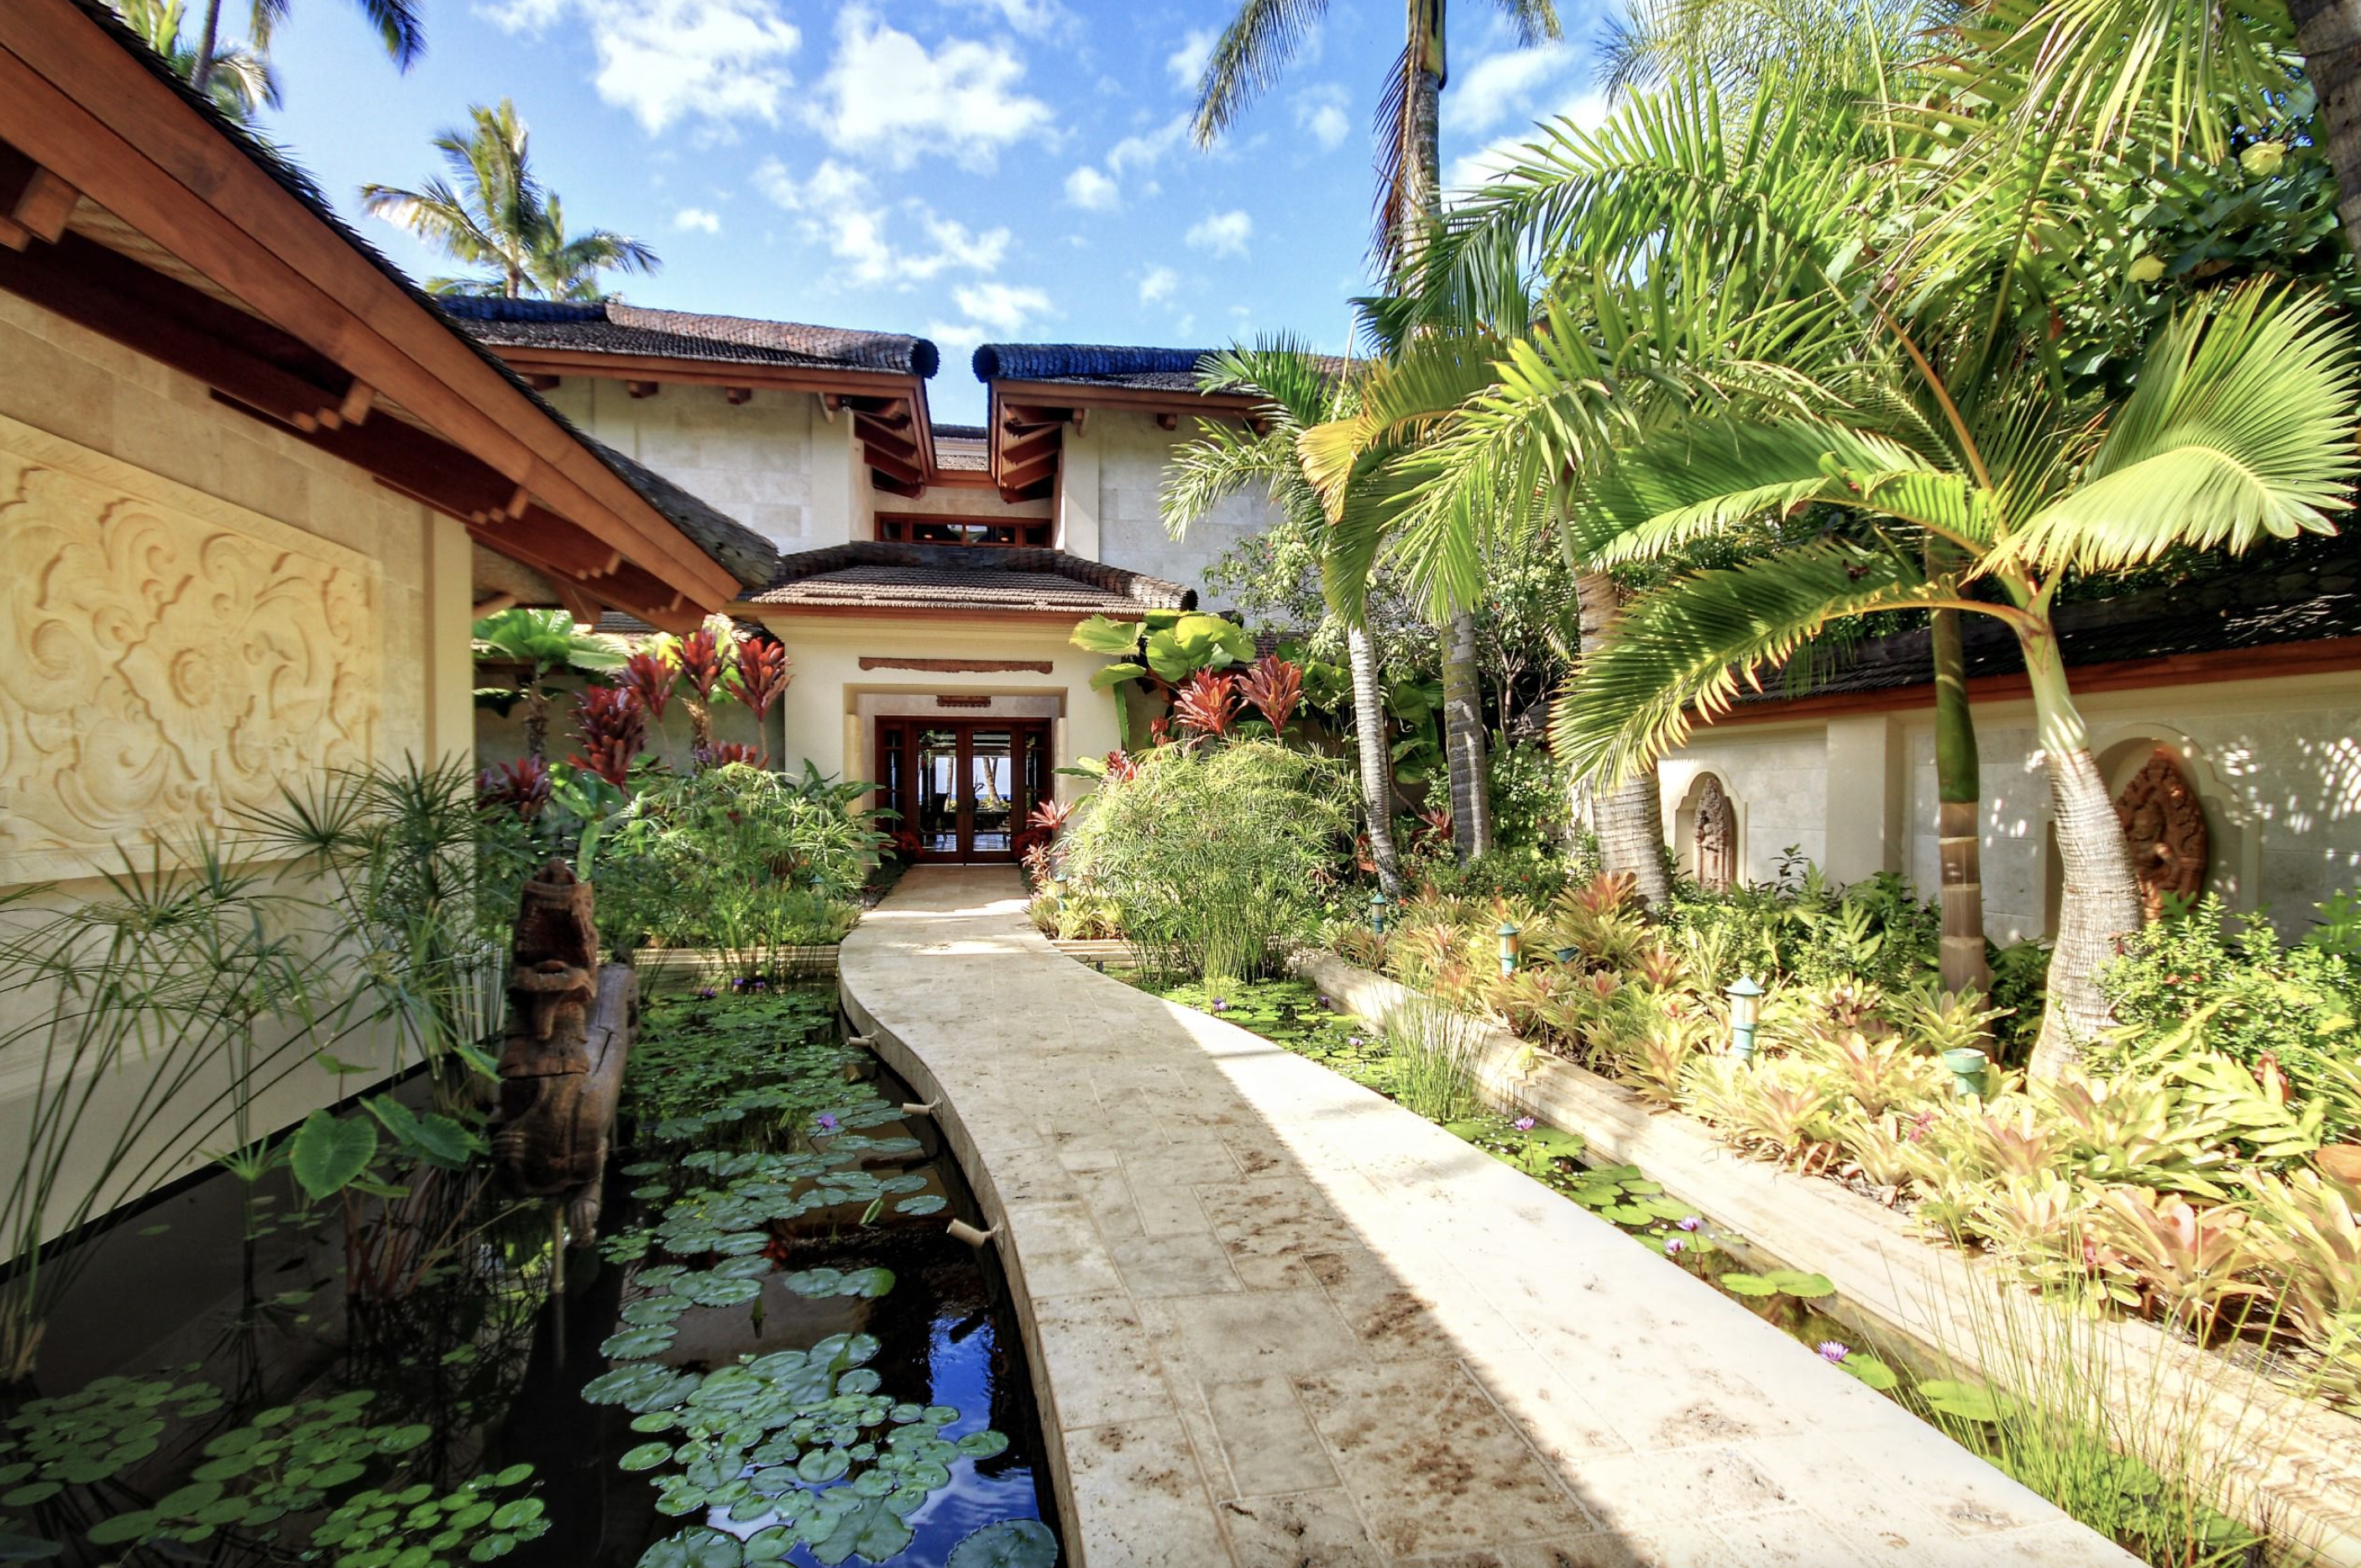 Keawakapu Home Listed at $38M as Neighboring Property Sells for $45M, Highest on Record